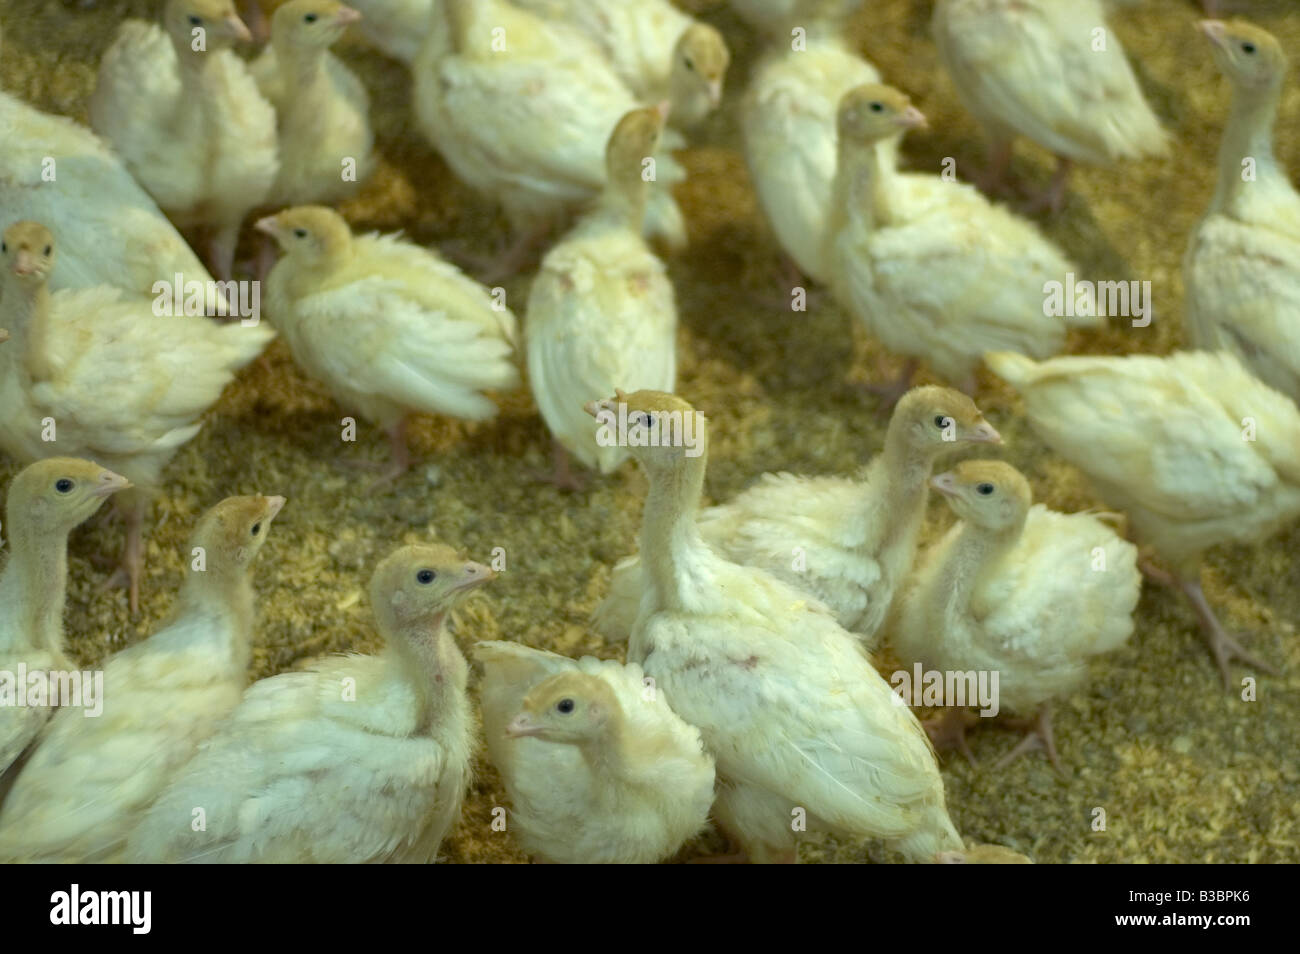 Young freerange white turkey poults/chicks in a barn, in preparation for Christmas. - Stock Image